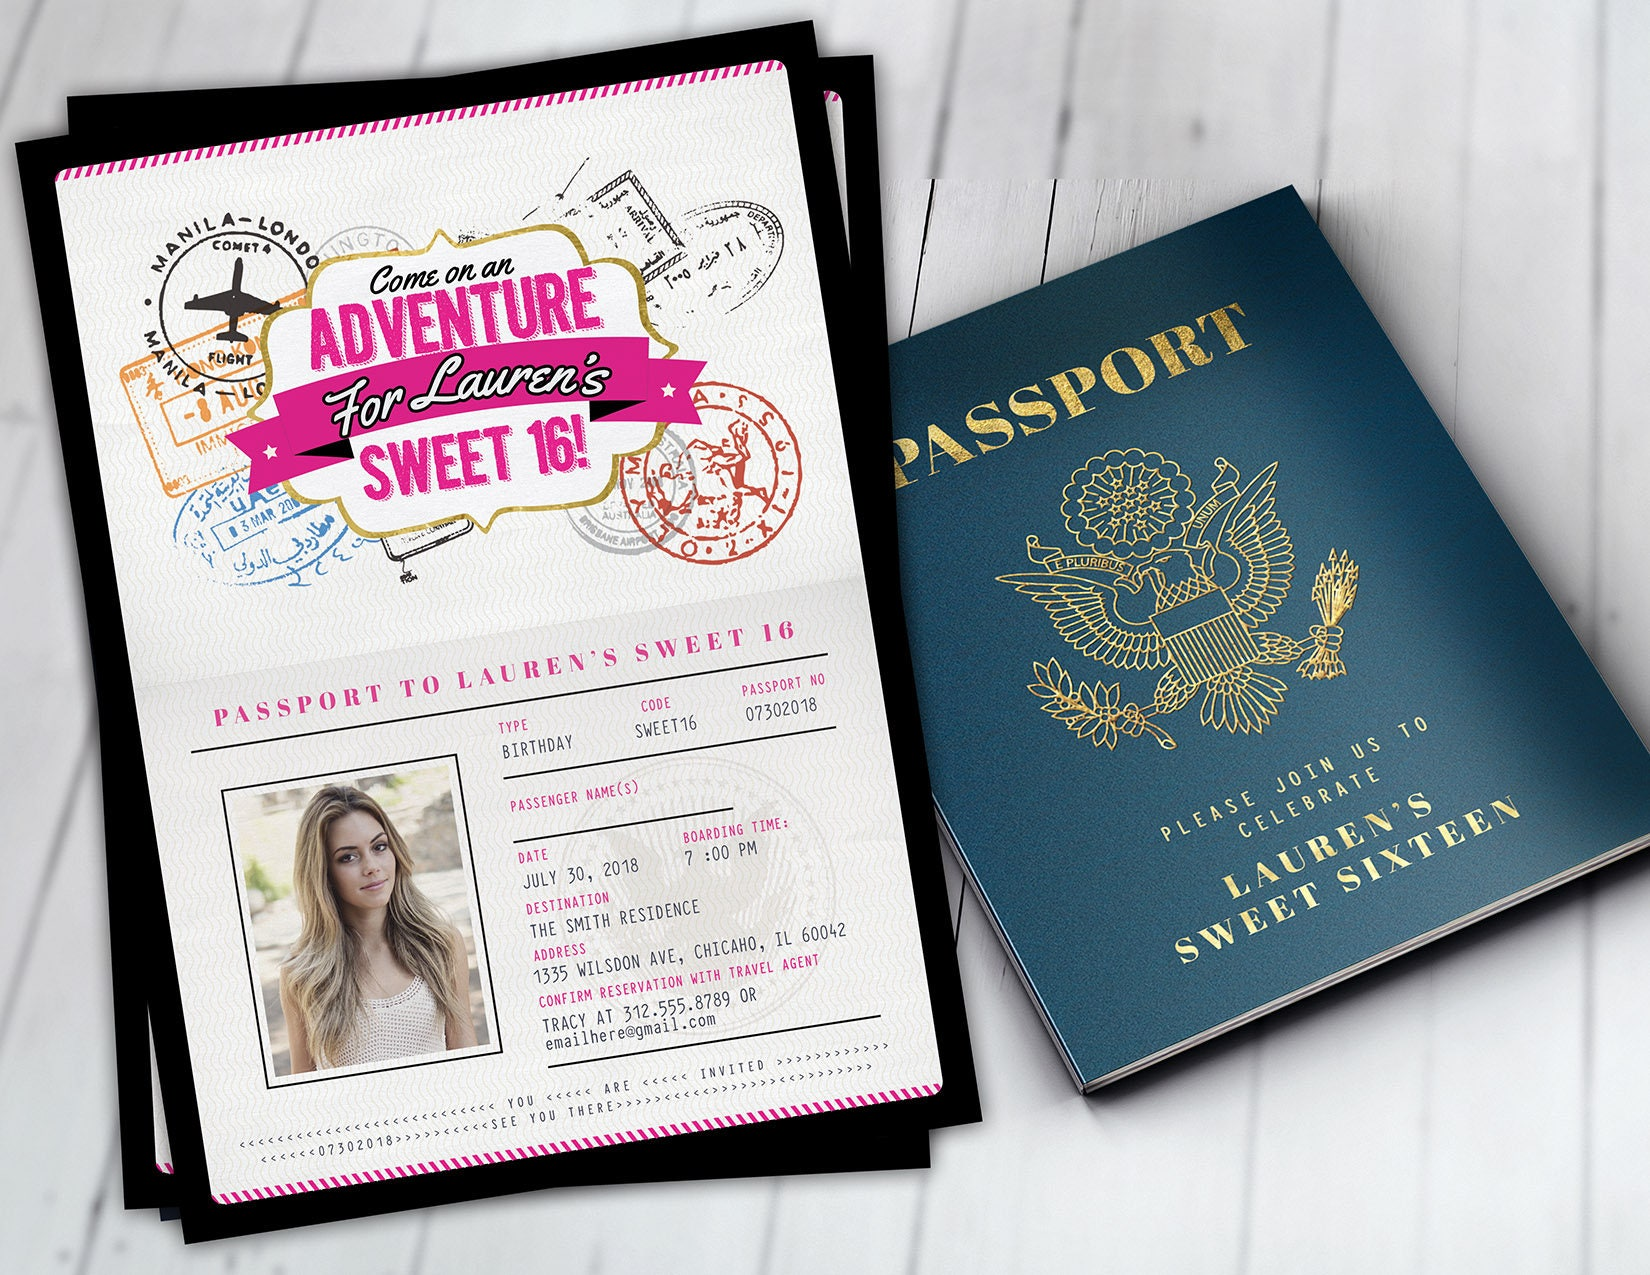 Any age sweet 16 birthday invitation travel invitation any age sweet 16 birthday invitation travel invitation destination passport invitation birthday invitation travel themedigital files filmwisefo